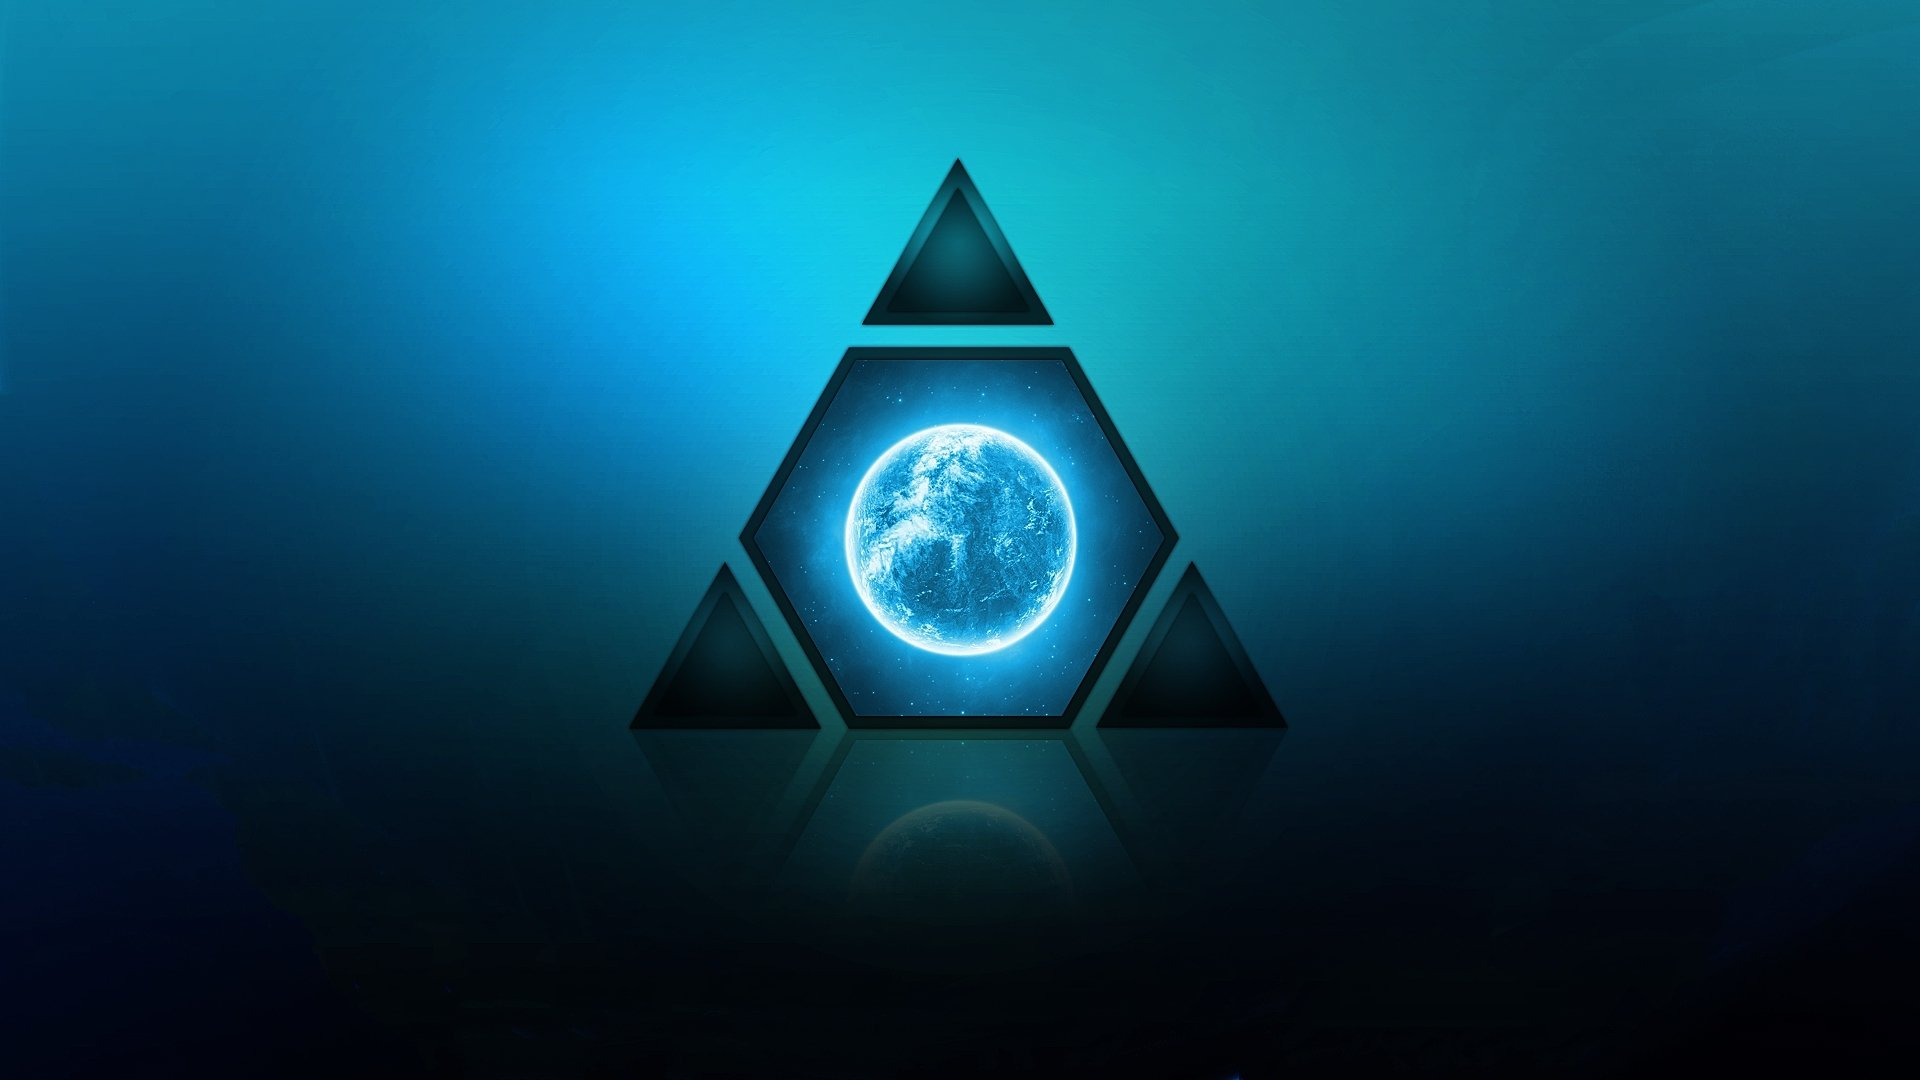 Earth - Artistic  Triangle Planet Blue Wallpaper